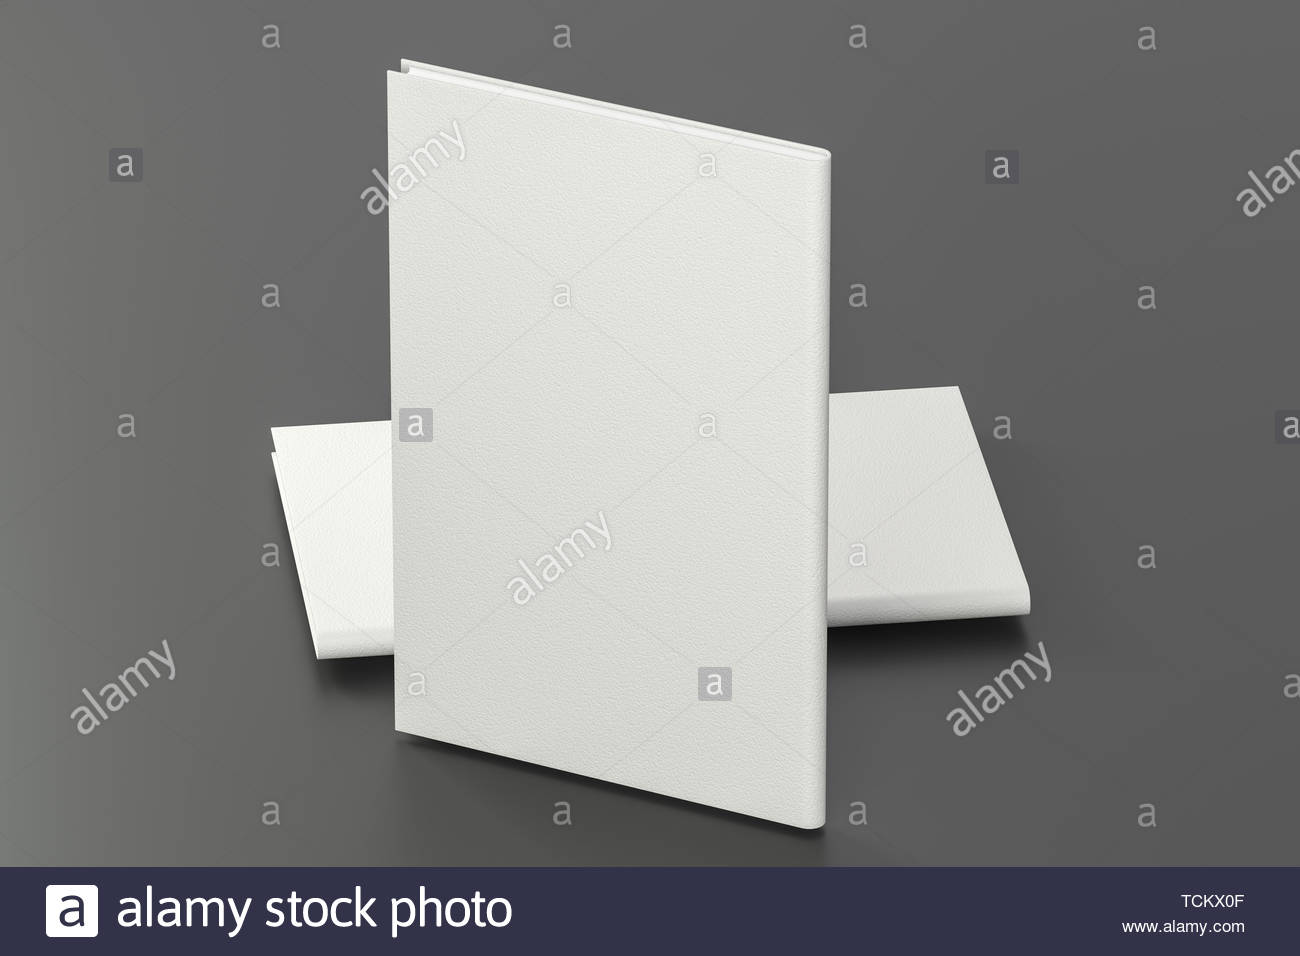 The organized hard cover notebooks 3d rendering Computer digital 1300x956